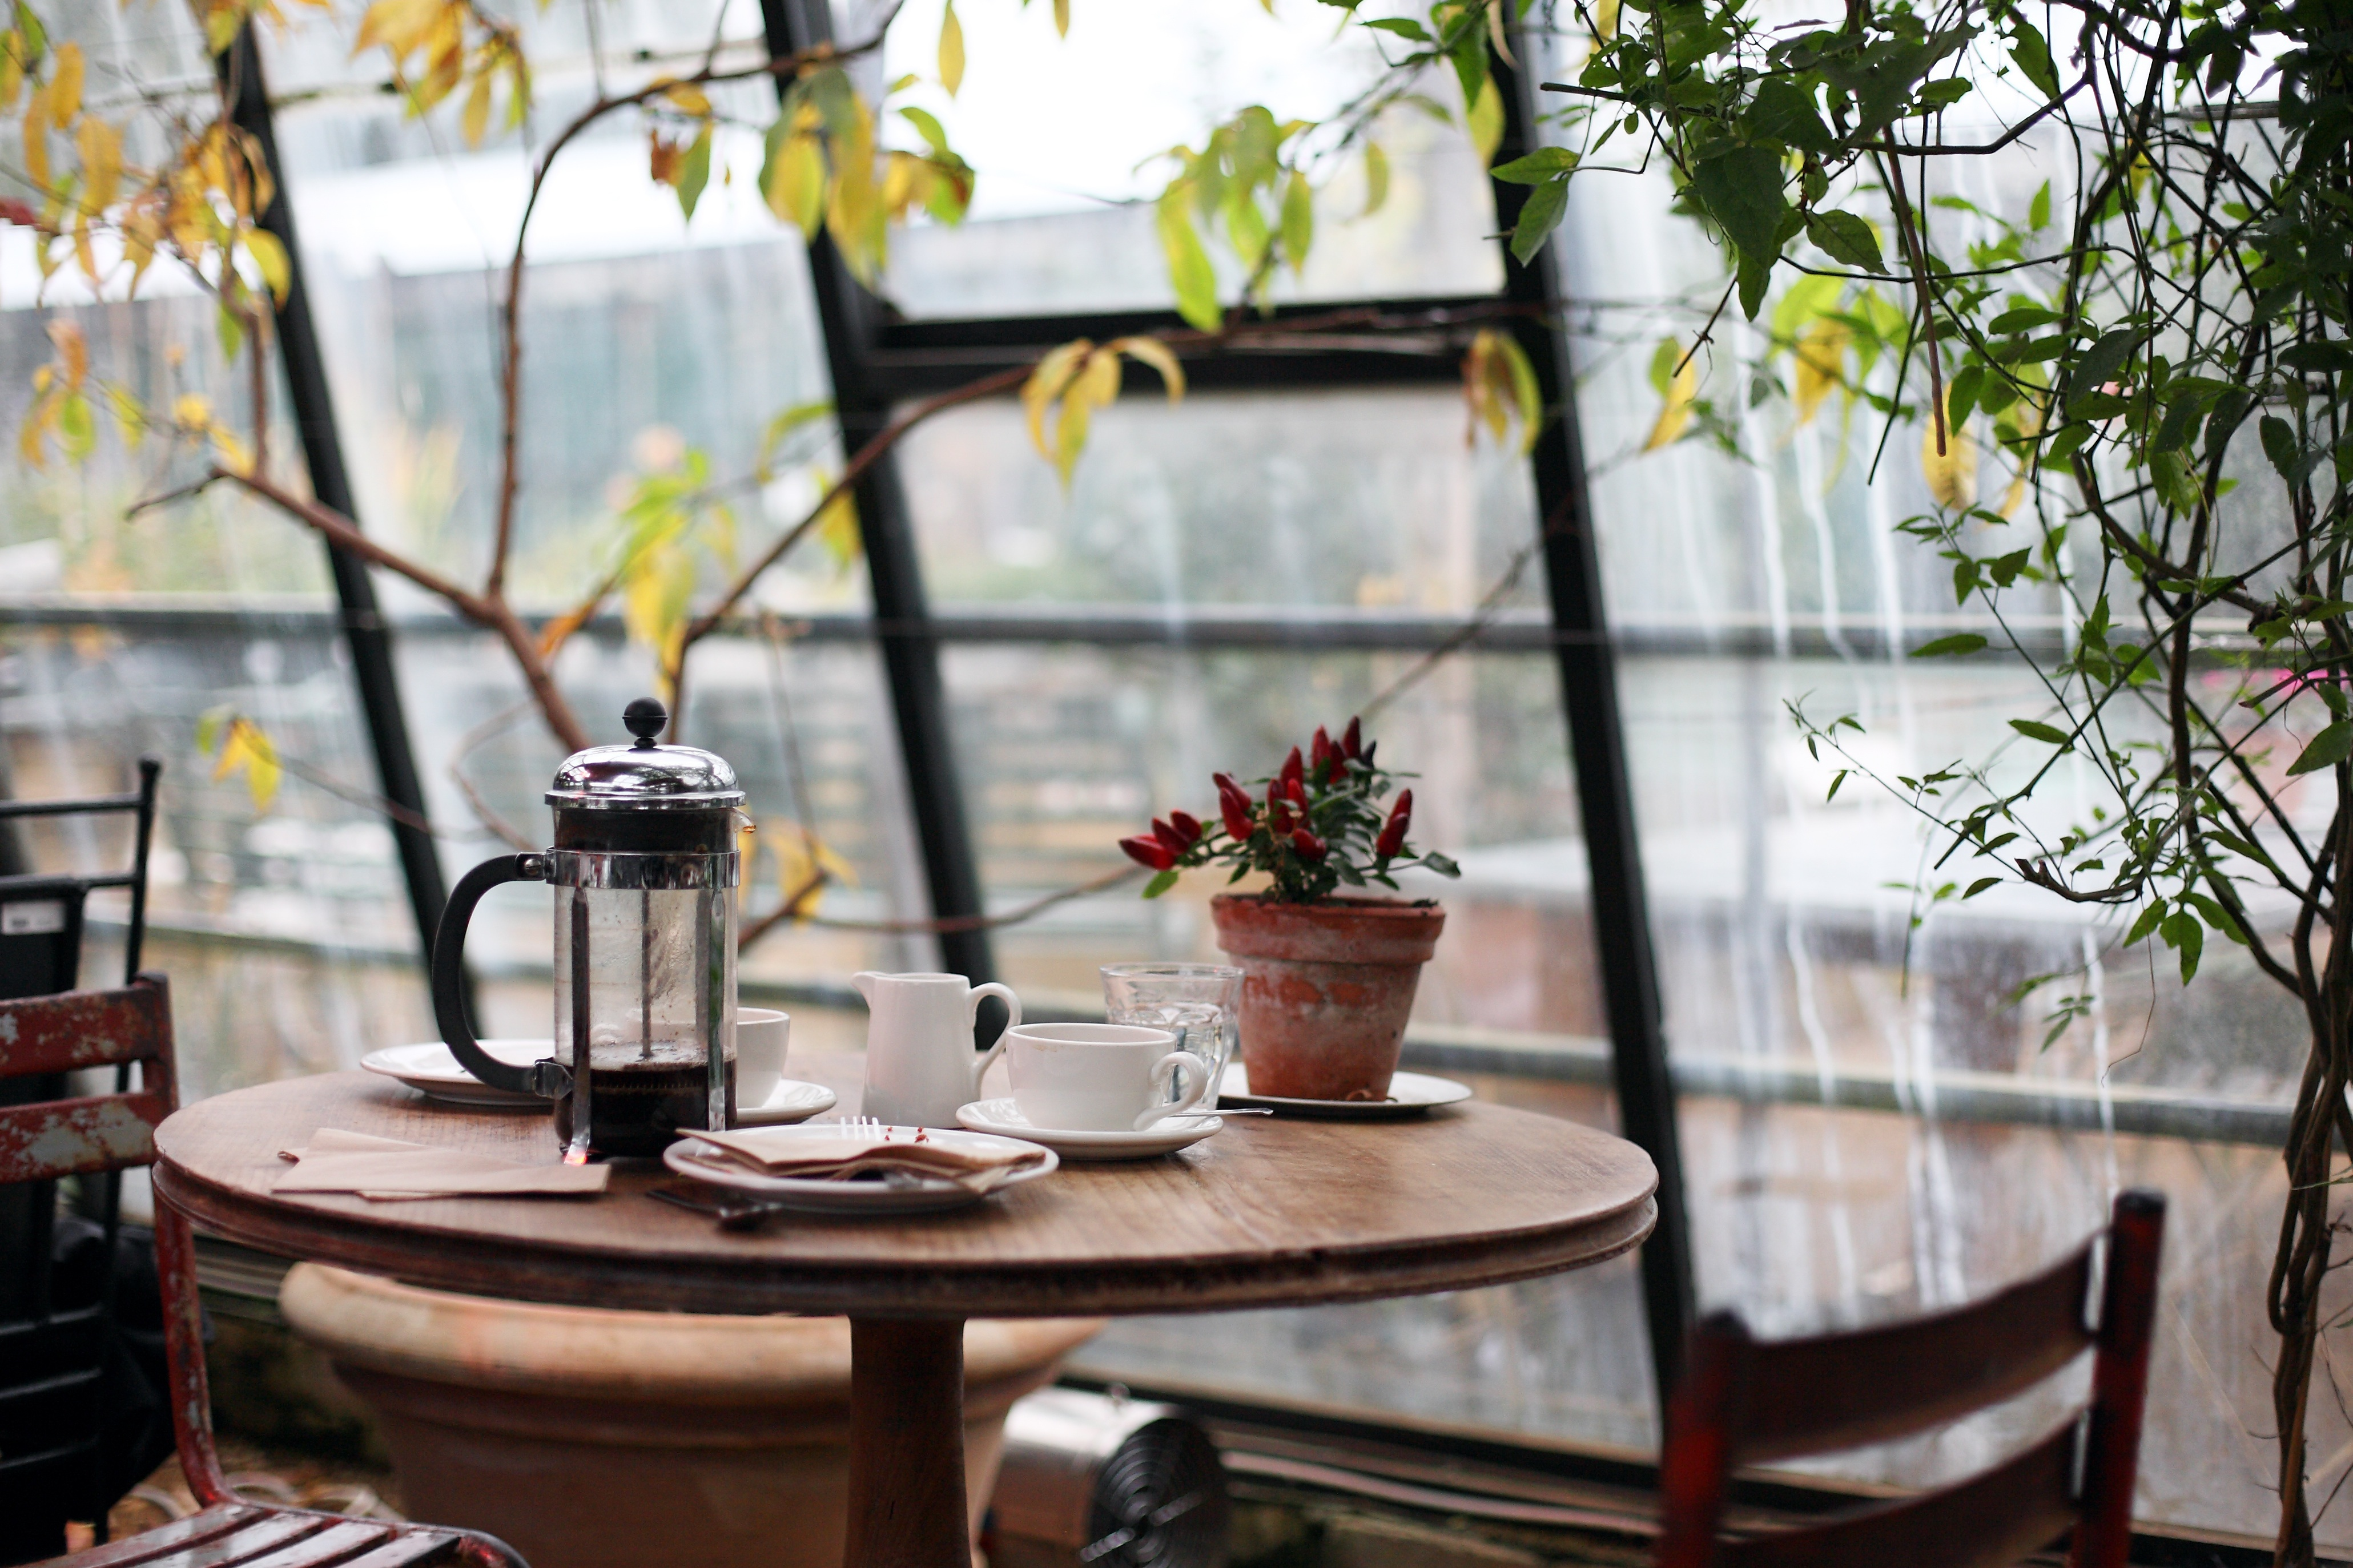 140266 download wallpaper Interior, Miscellanea, Miscellaneous, Design, Table, Cafe, Café, Side Table, Restaurant screensavers and pictures for free